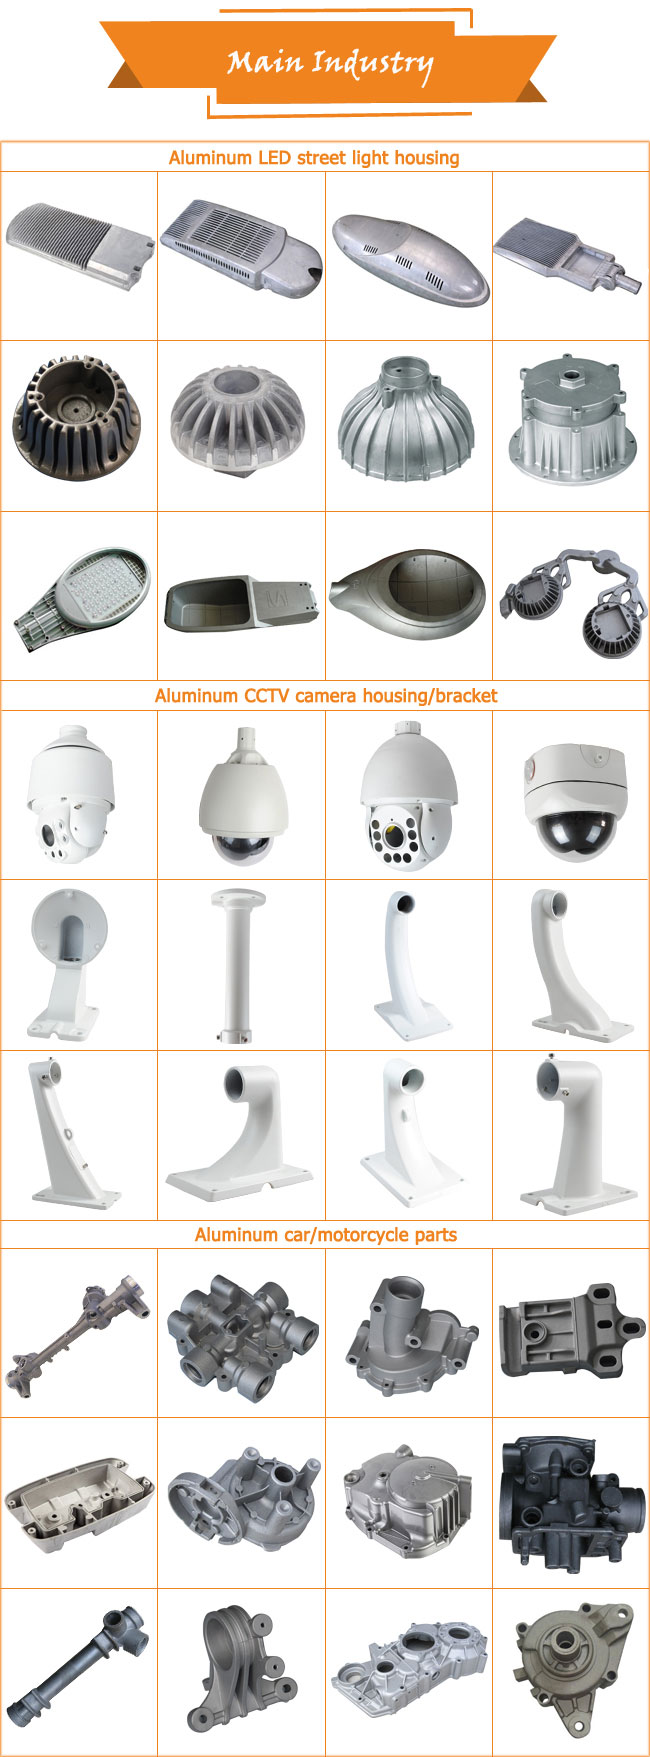 CNC Aluminum Alloy Motorcycle Spare Parts and Accessories Factory Made in China